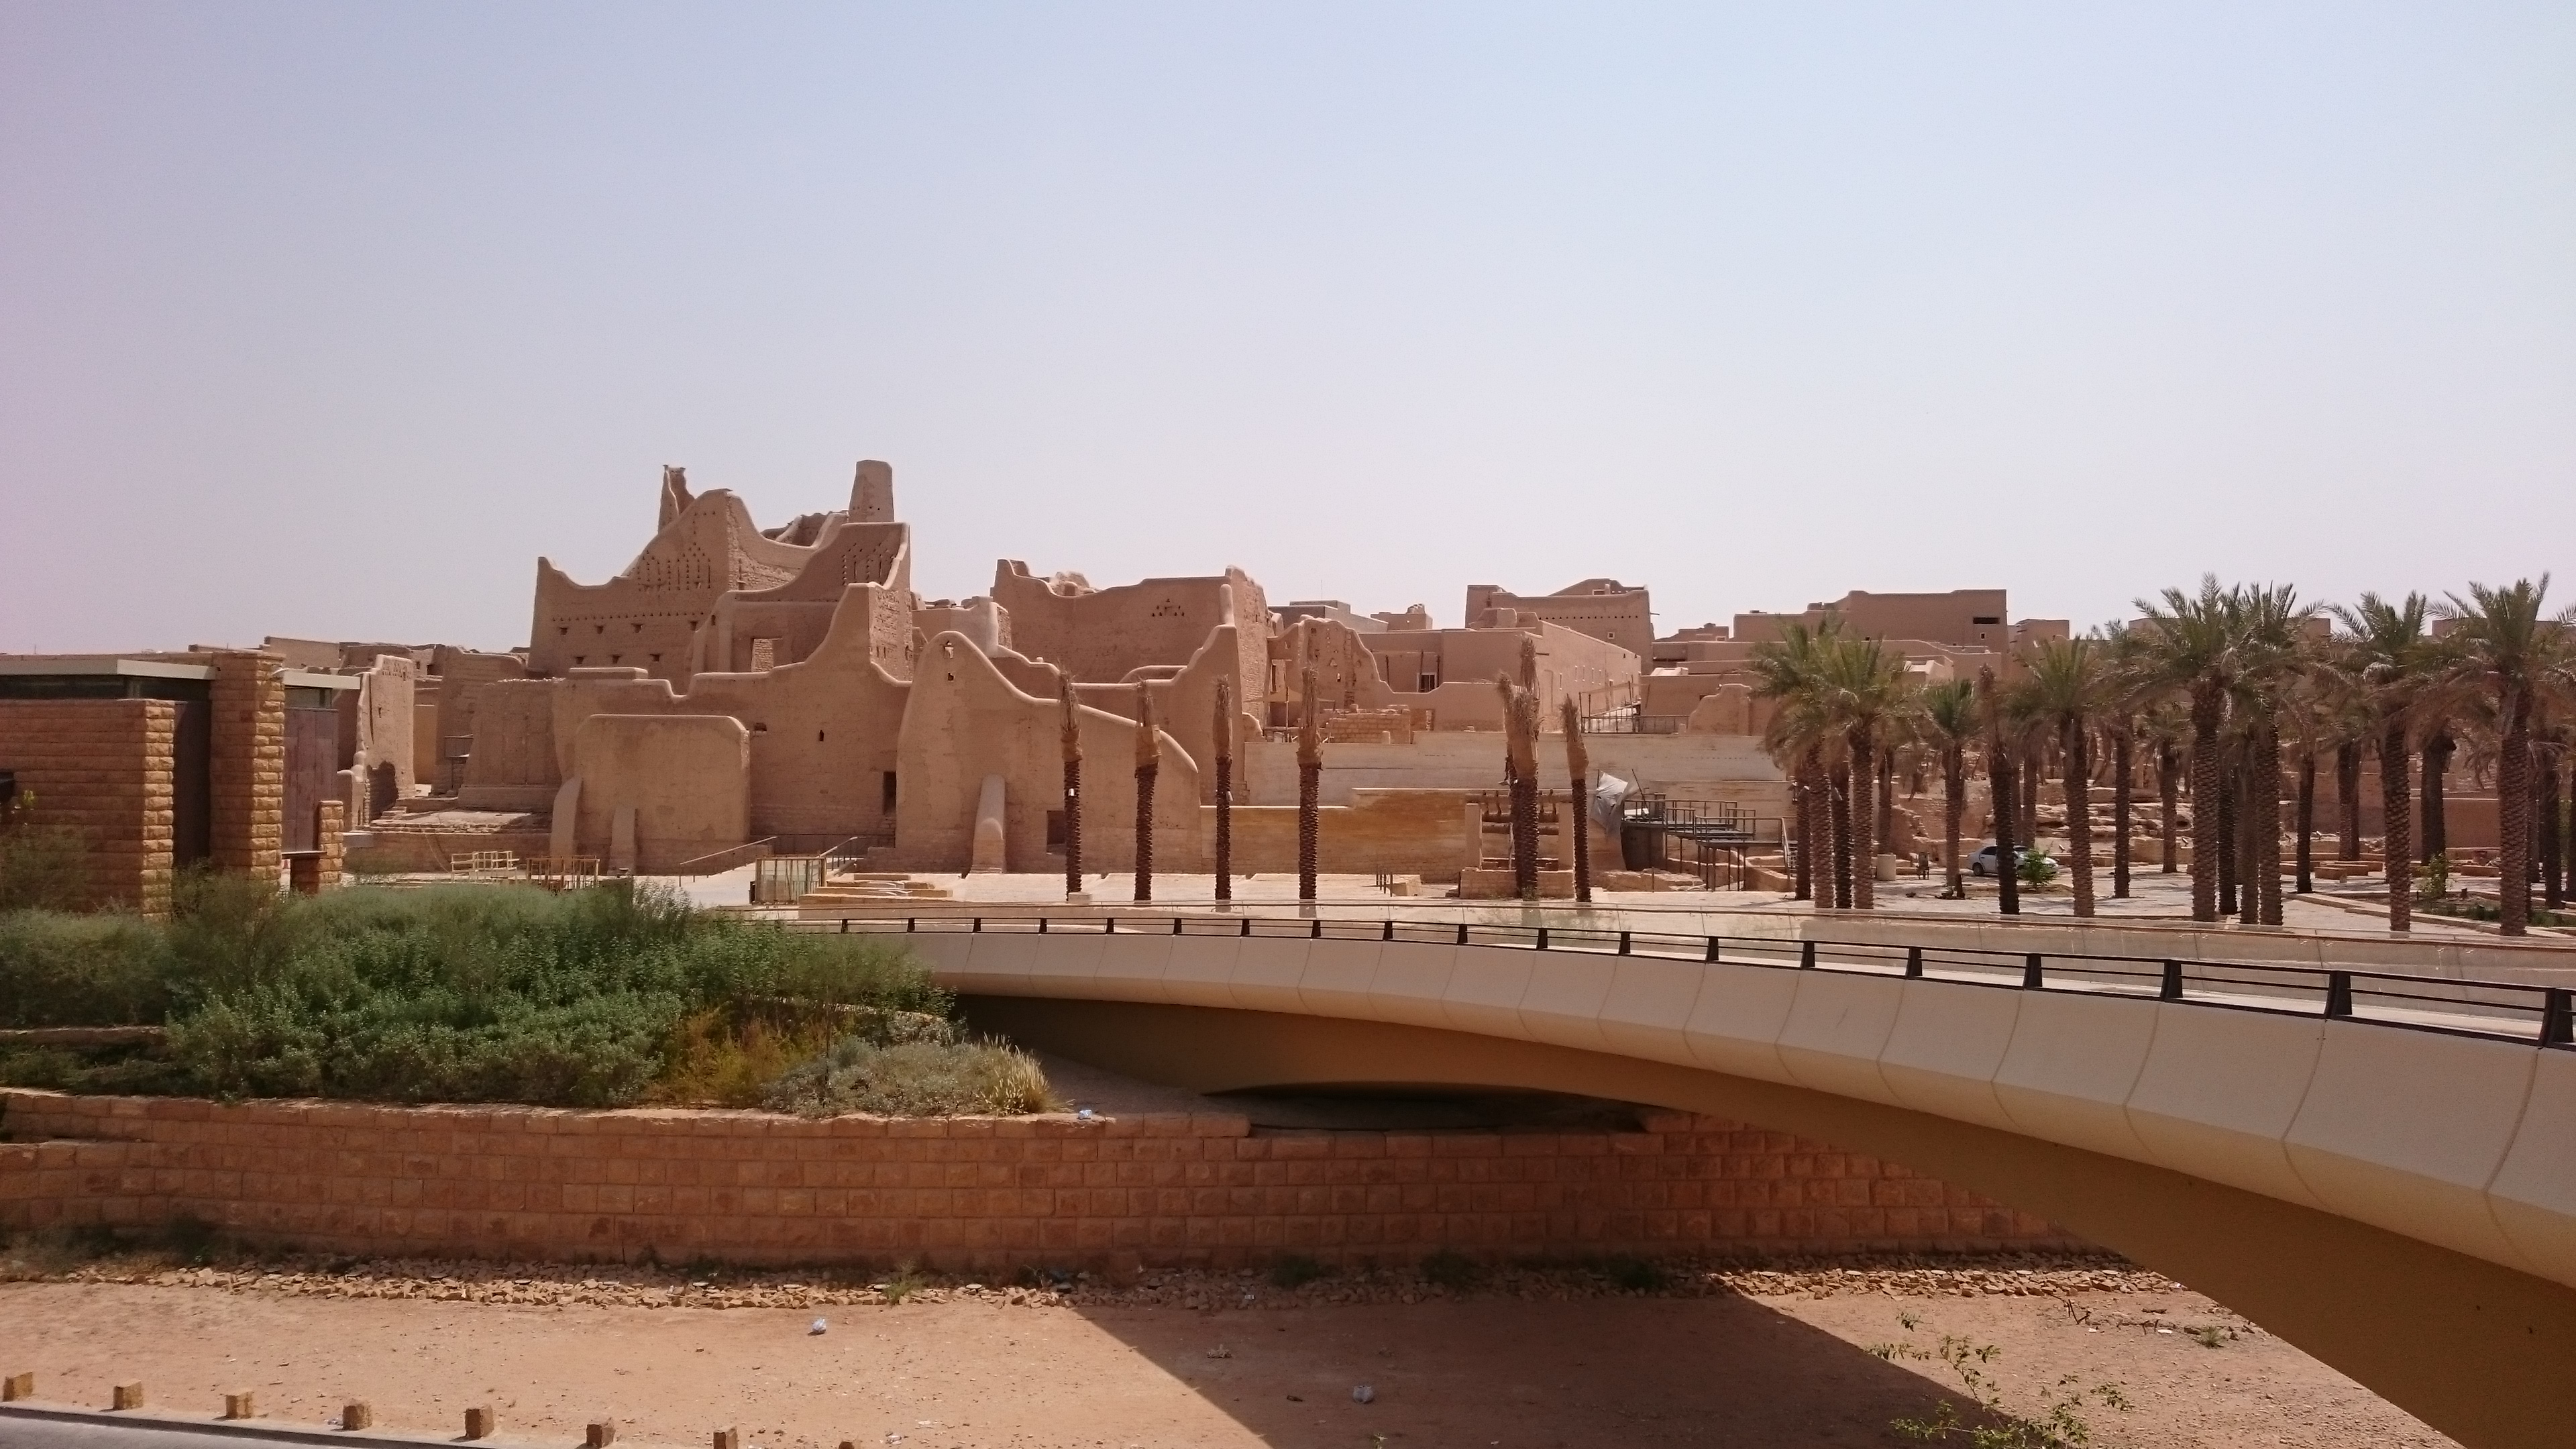 A bridge over the wadi road allows access to the 'royal' side of Historical Addiriyah